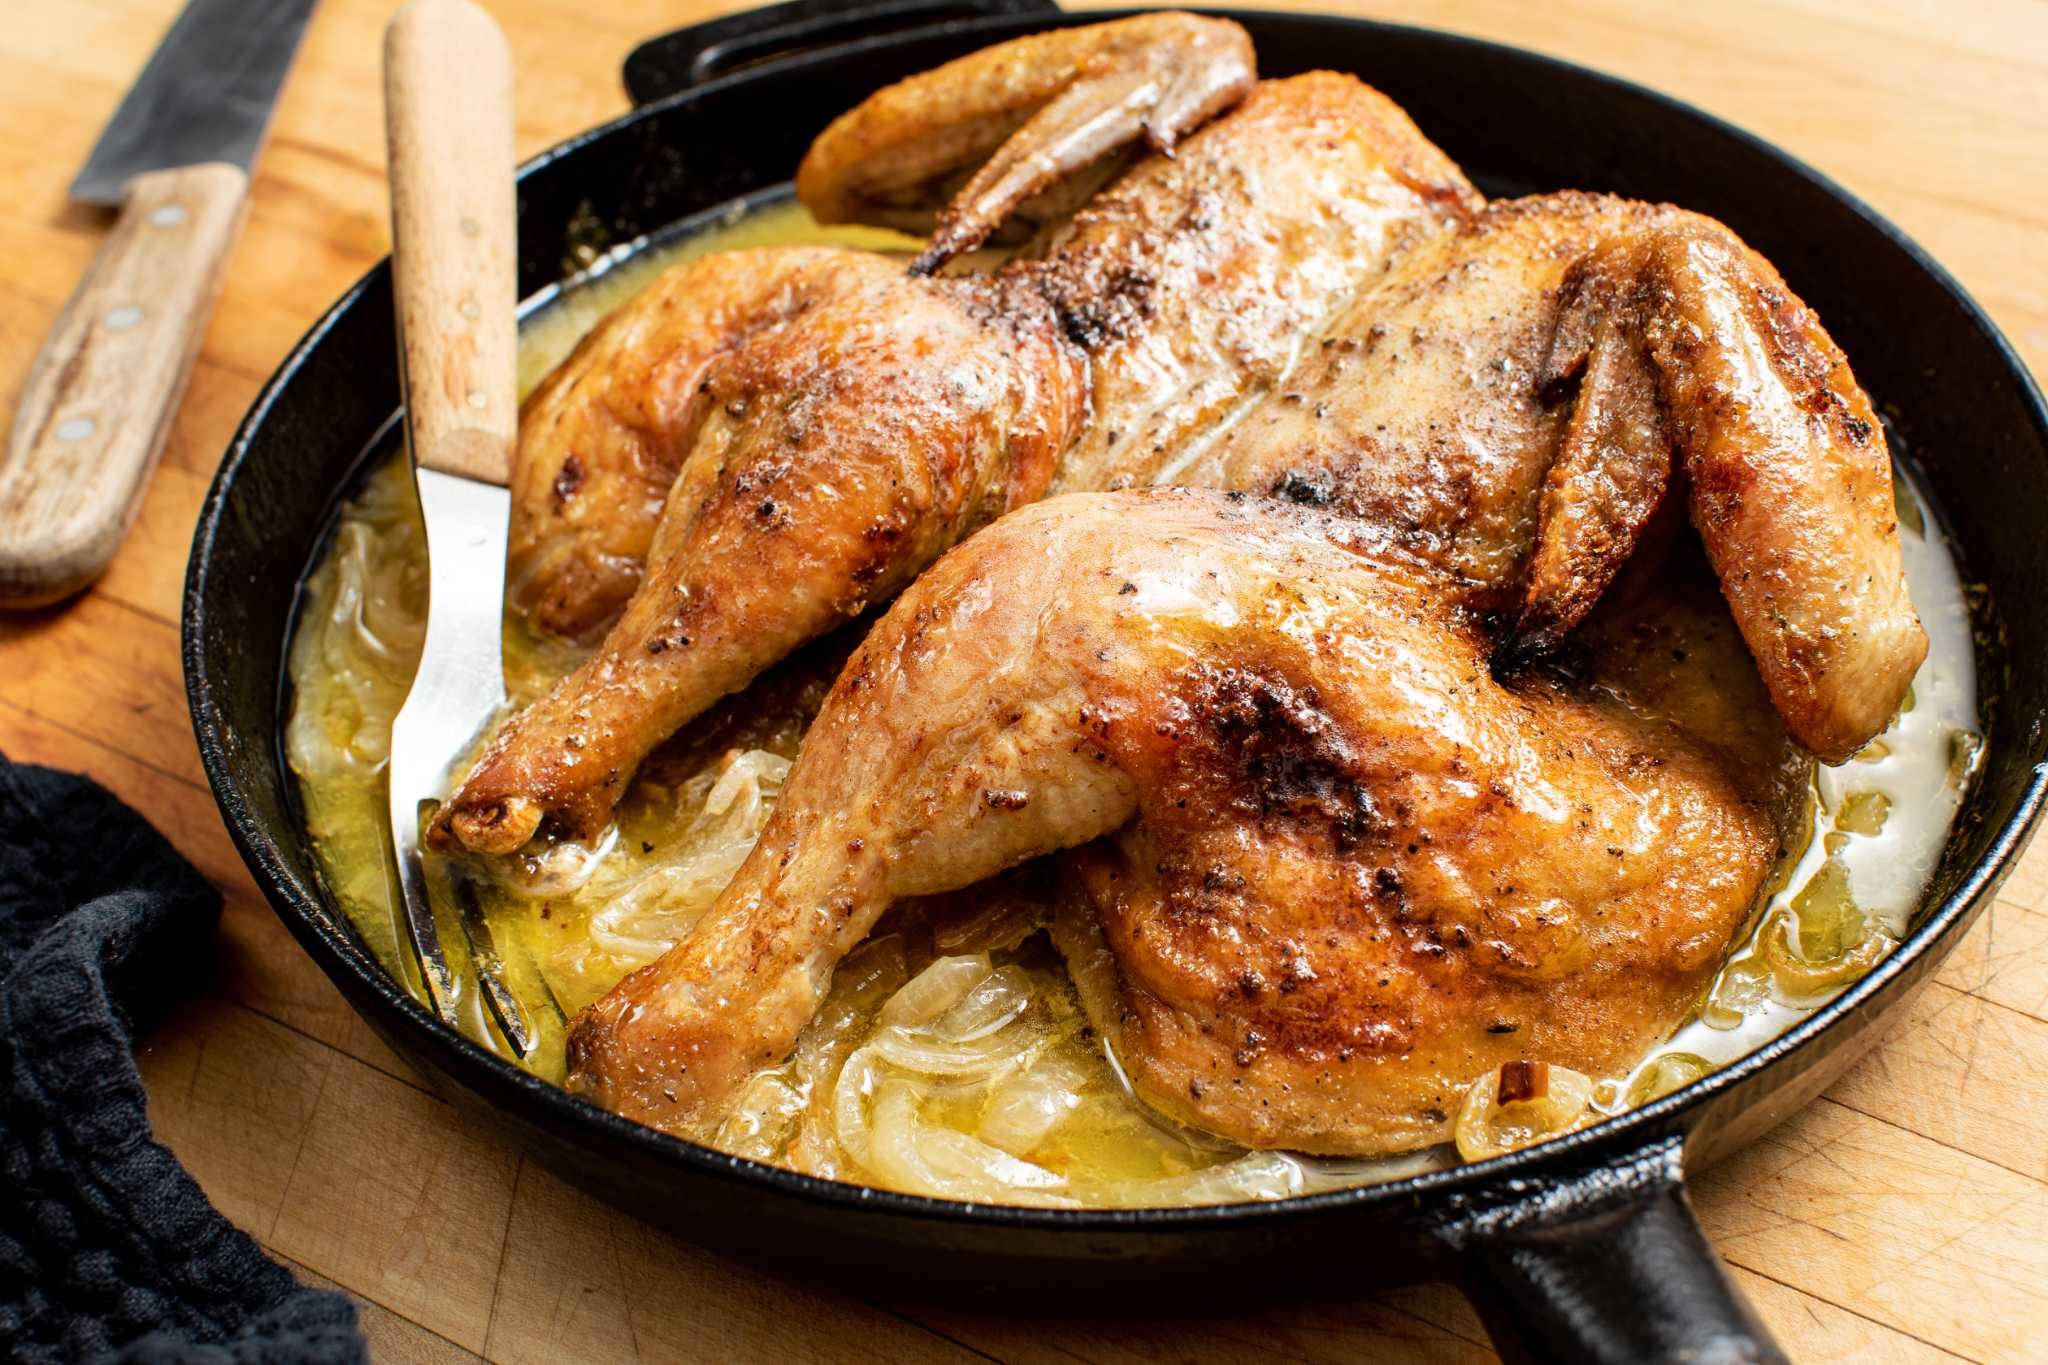 Aromatic roasted chicken with homemade adobo is an updated take on a classic meal